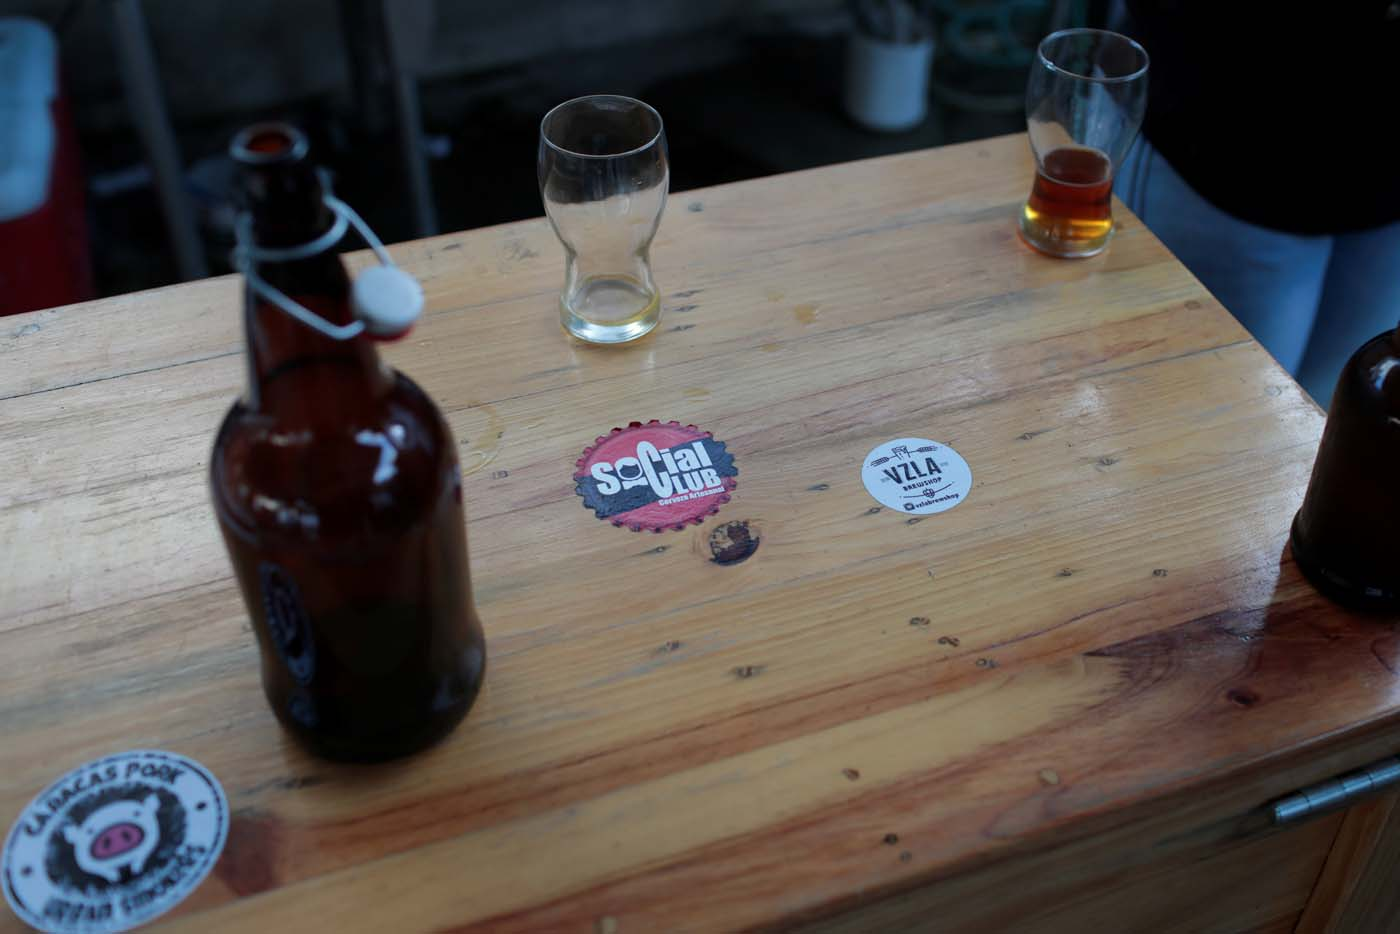 A sticker with the logo of Social Club brewery is seen on a table in a beer garden at the garage of the brewery in Caracas, Venezuela, September 15, 2017. Picture taken September 15, 2017. REUTERS/Marco Bello